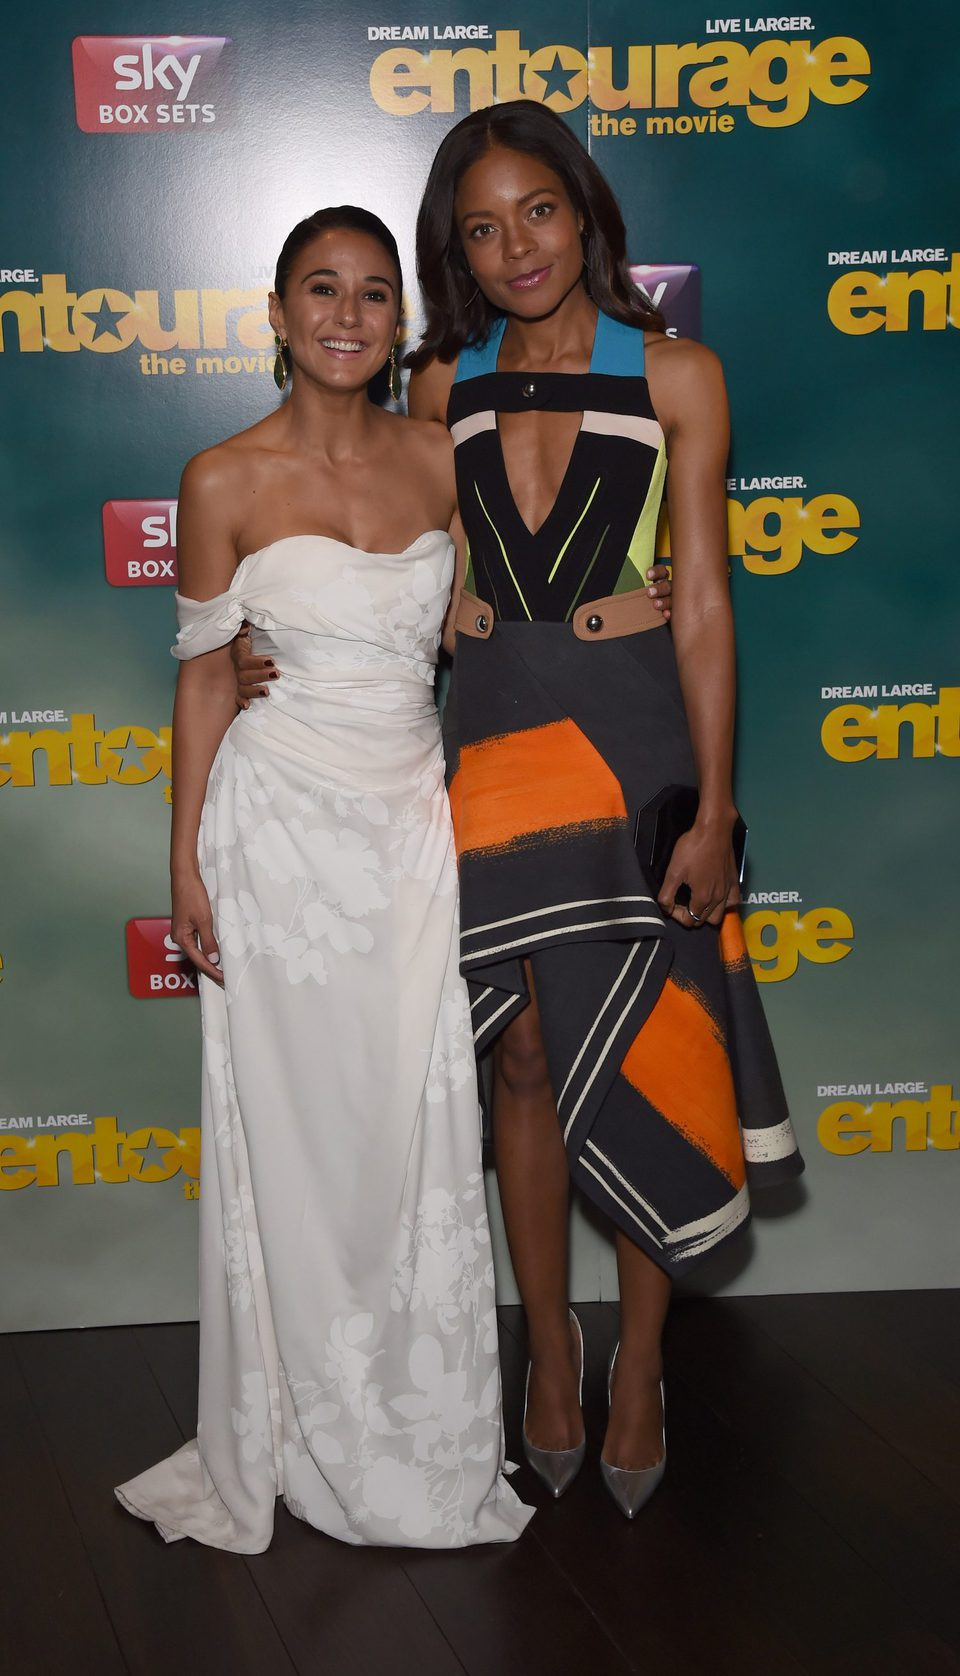 Emmanuelle Chriqui and Naomie Harris at the 'Entourage' after party in London